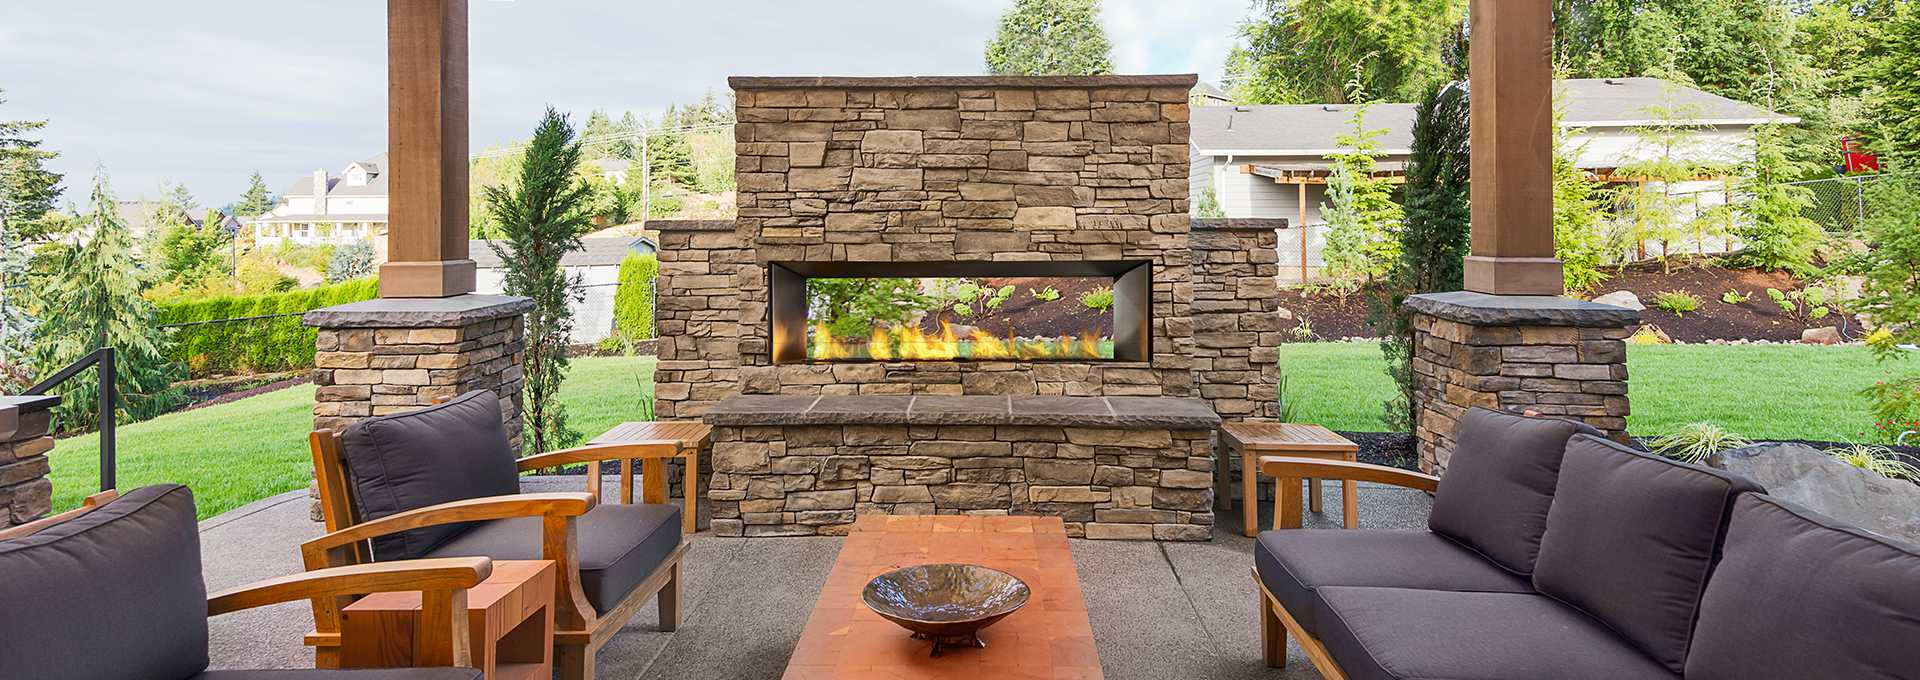 Regency Horizon Hzo60 Outdoor Gas Fireplace Toronto Best